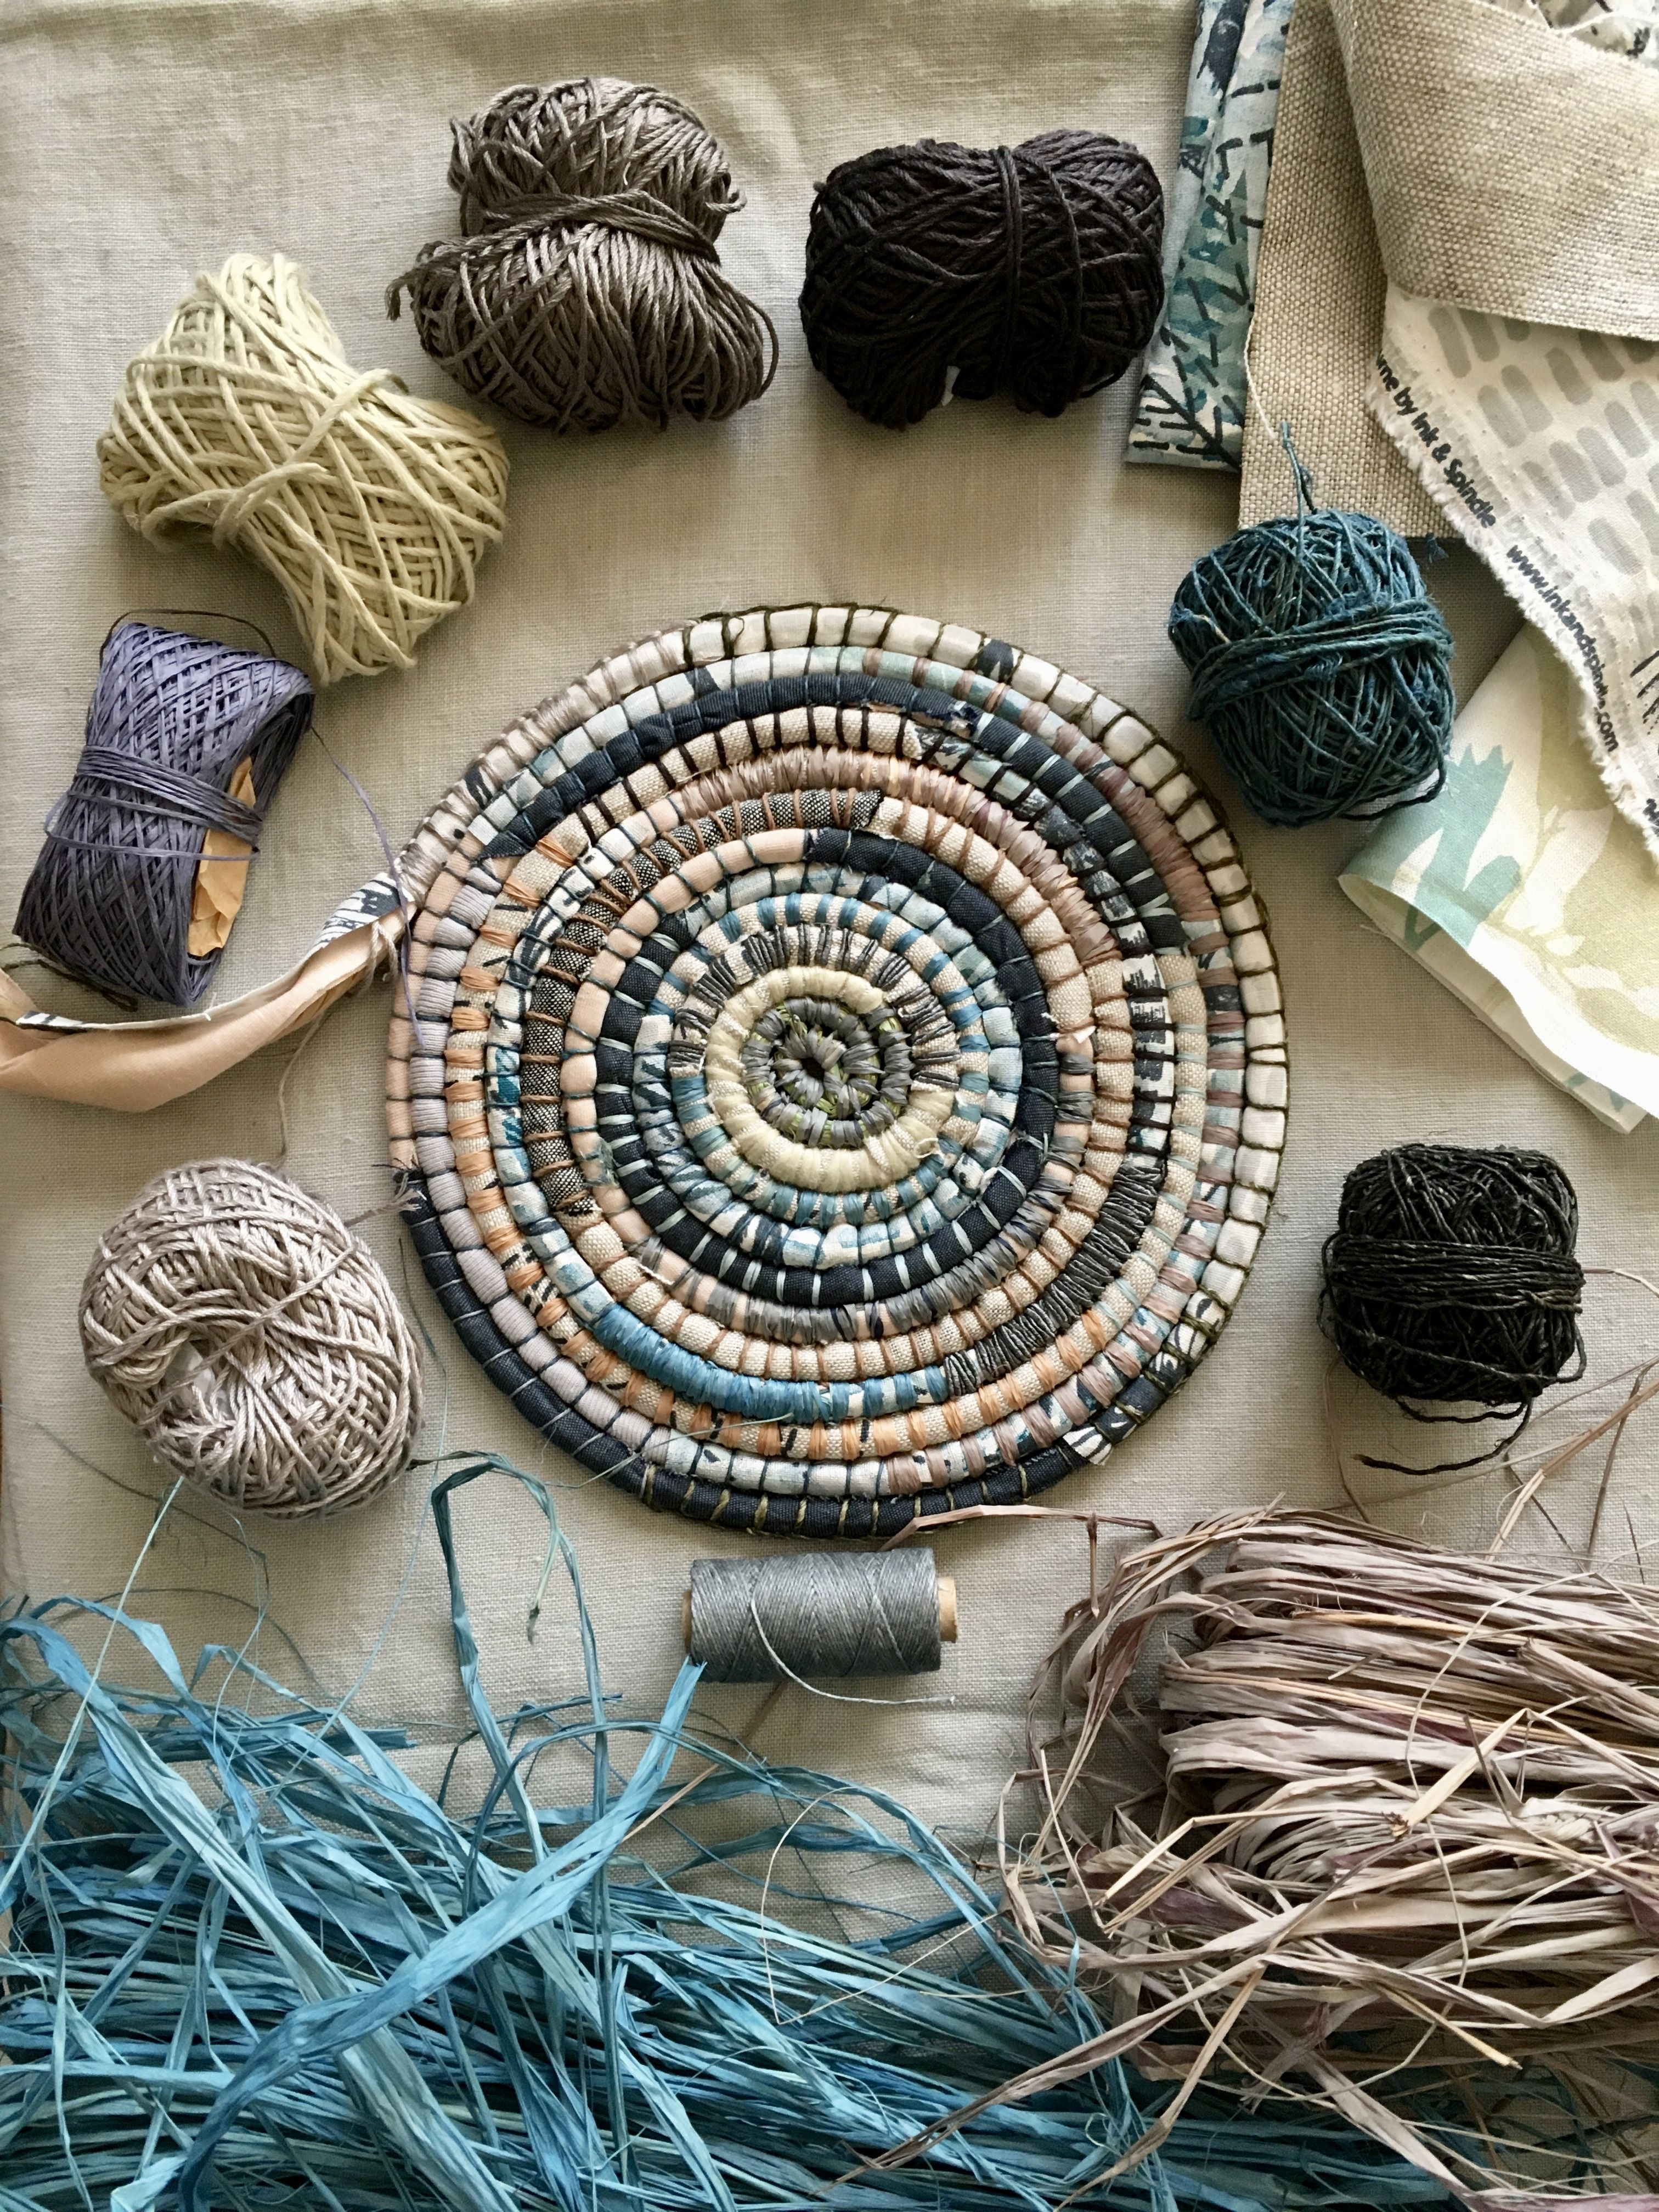 Basket making with recycled fabrics